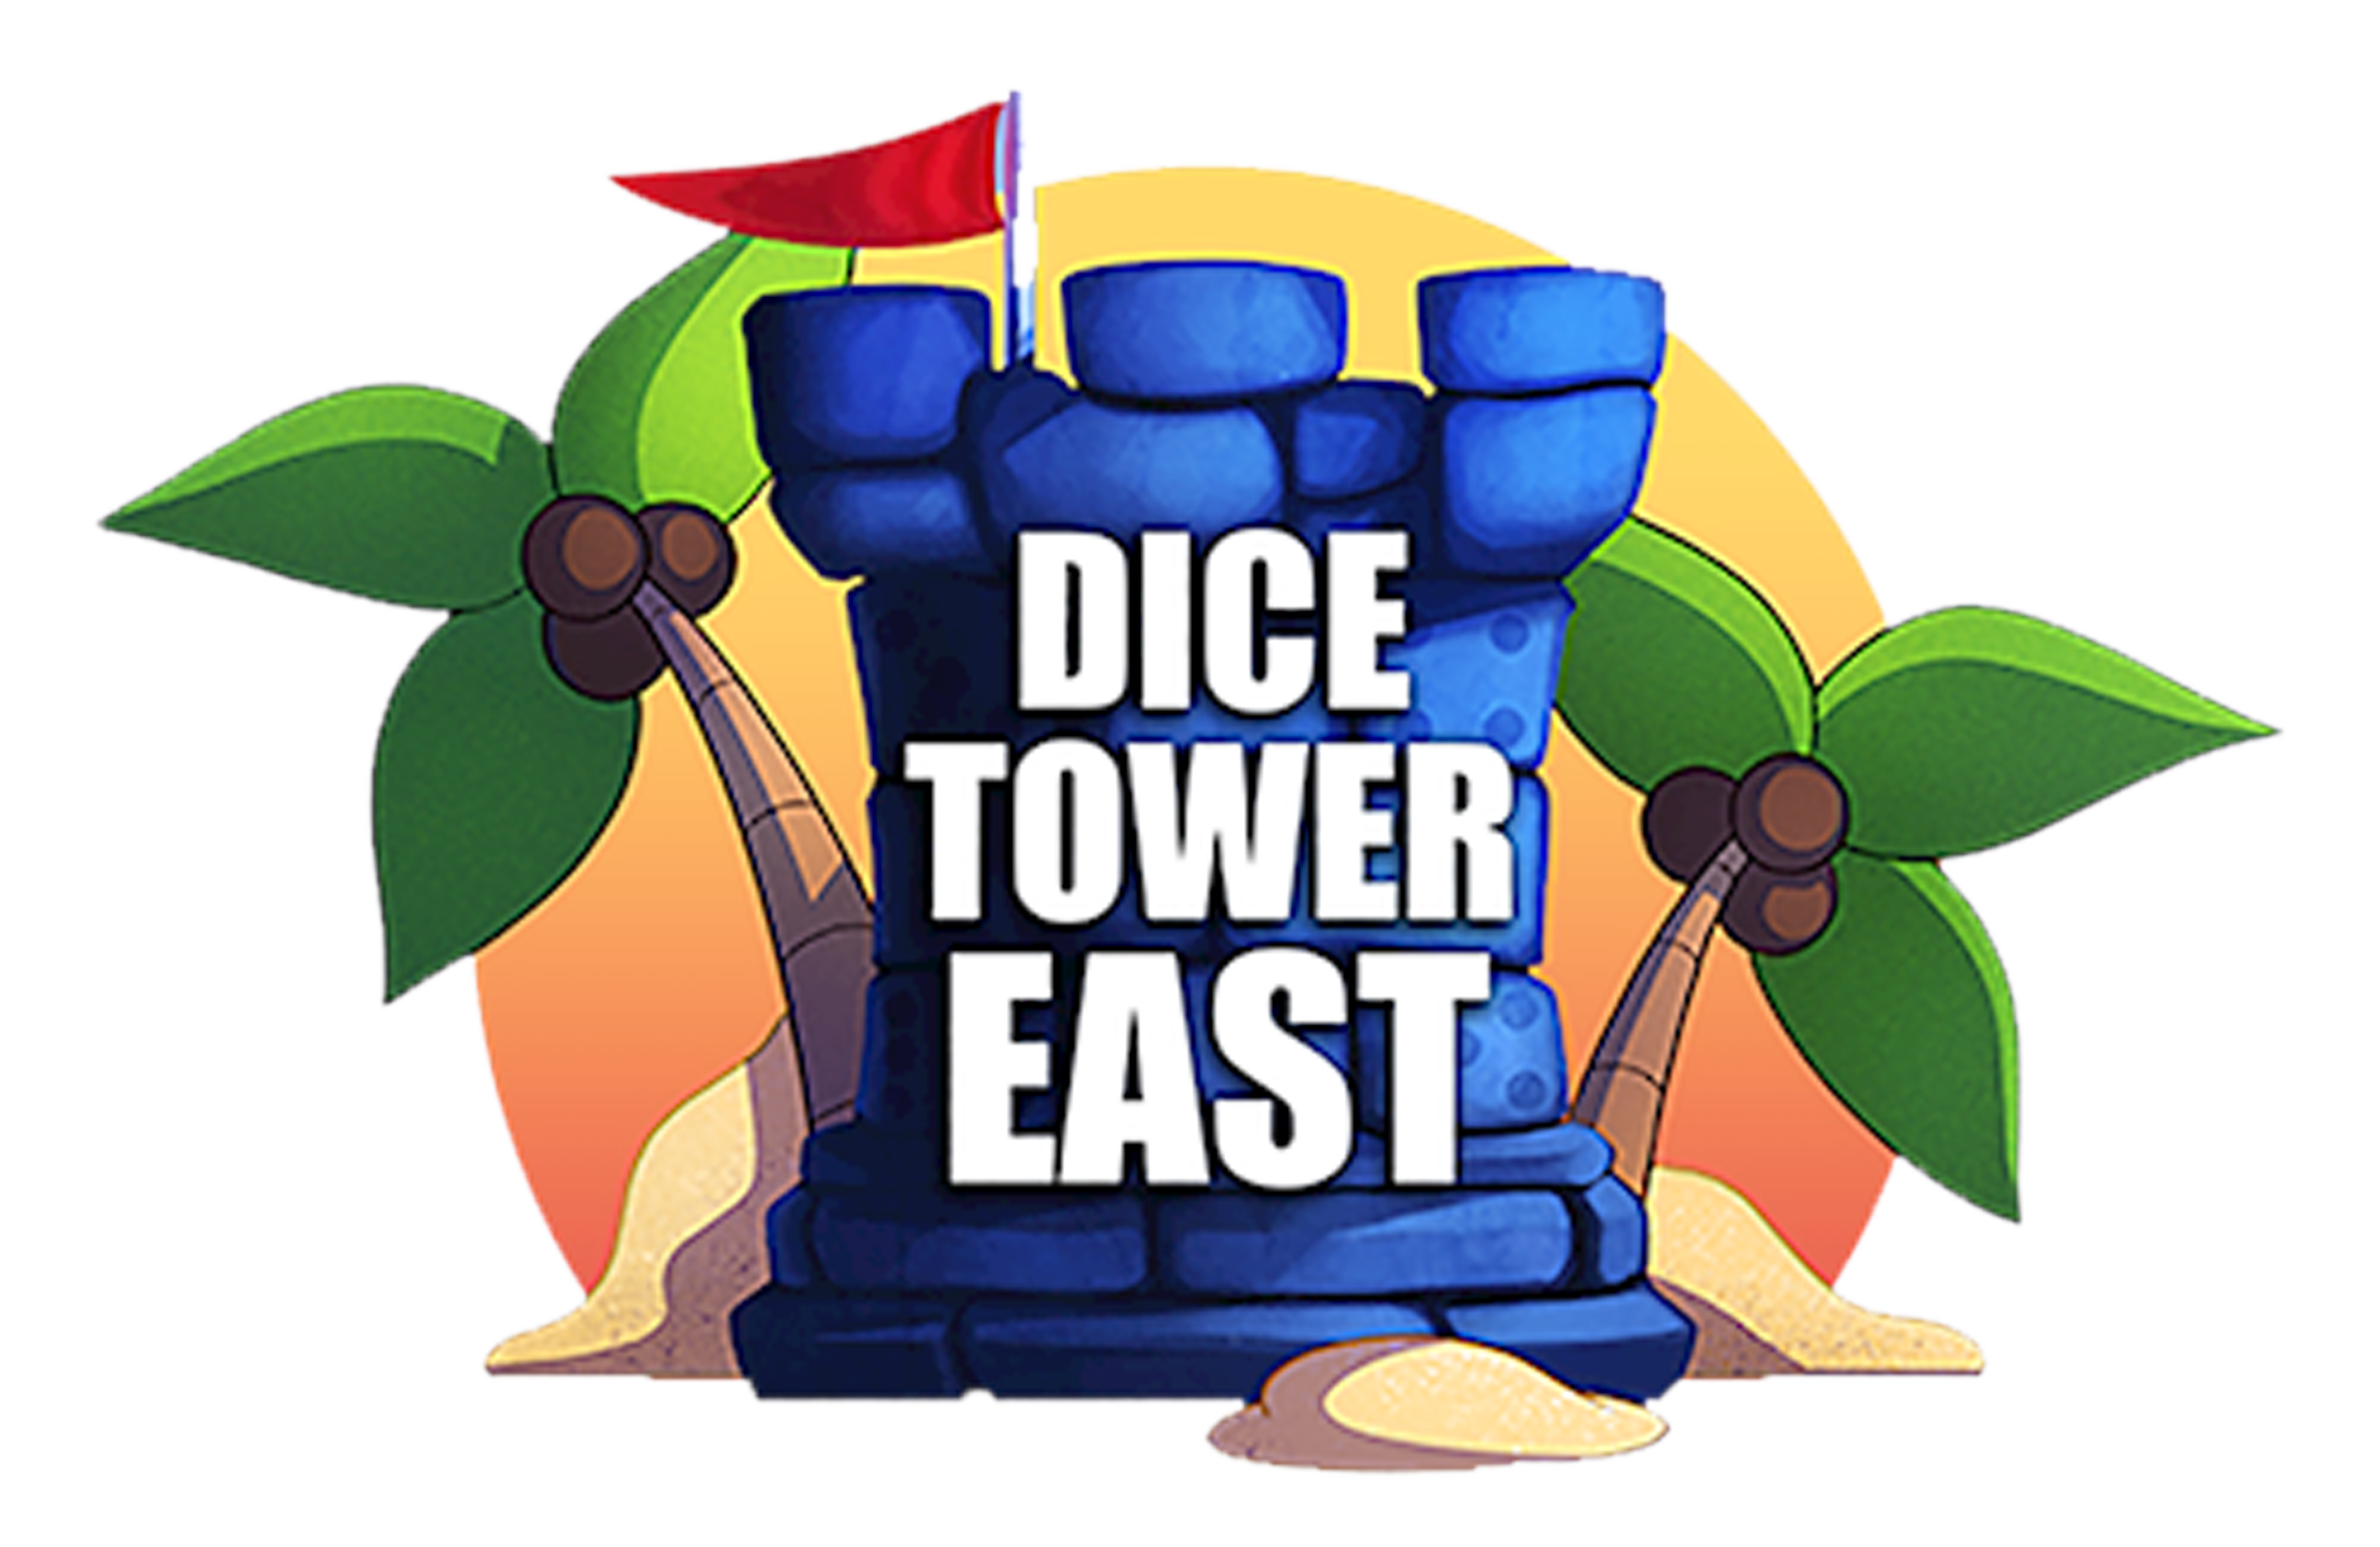 2020 Dice Tower East